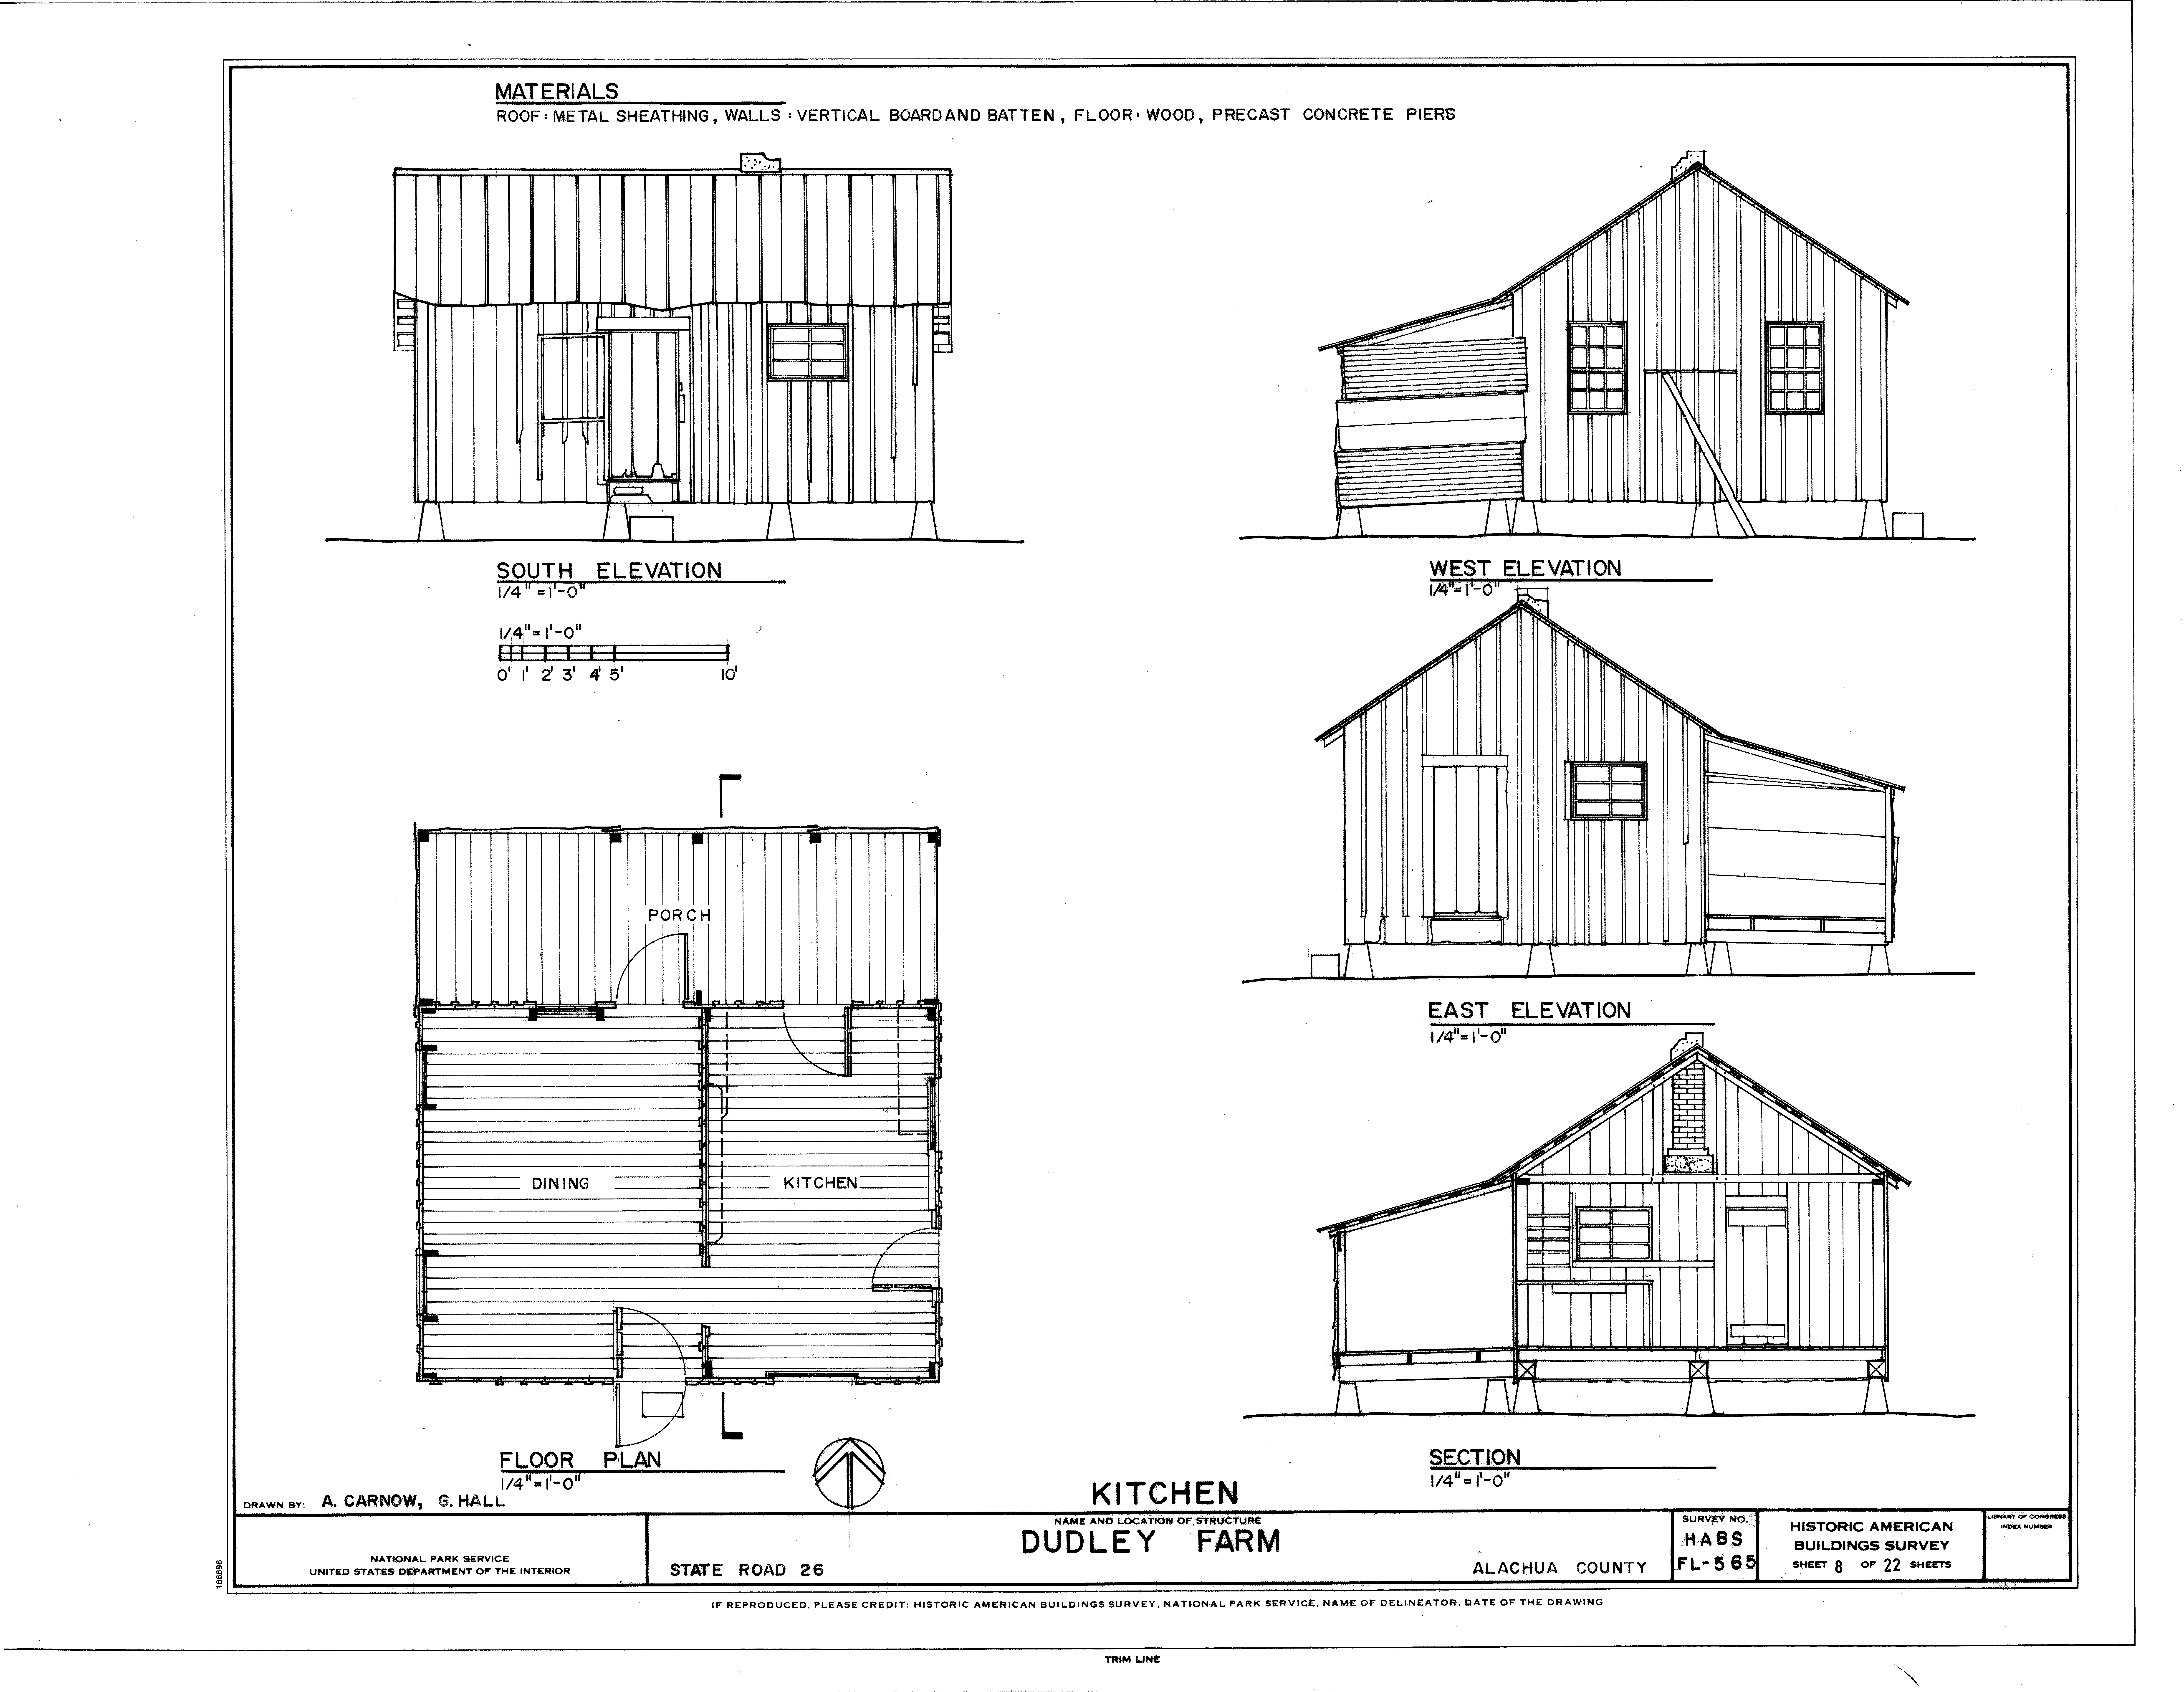 Kitchen_ _Elevations%2C_Floor_Plan_and_Section_ _Dudley_Farm%2C_Farmhouse_and_Outbuildings%2C_18730_West_Newberry_Road%2C_Newberry%2C_Alachua_County%2C_FL_HABS_FL 565_%28sheet_8_of_22%29